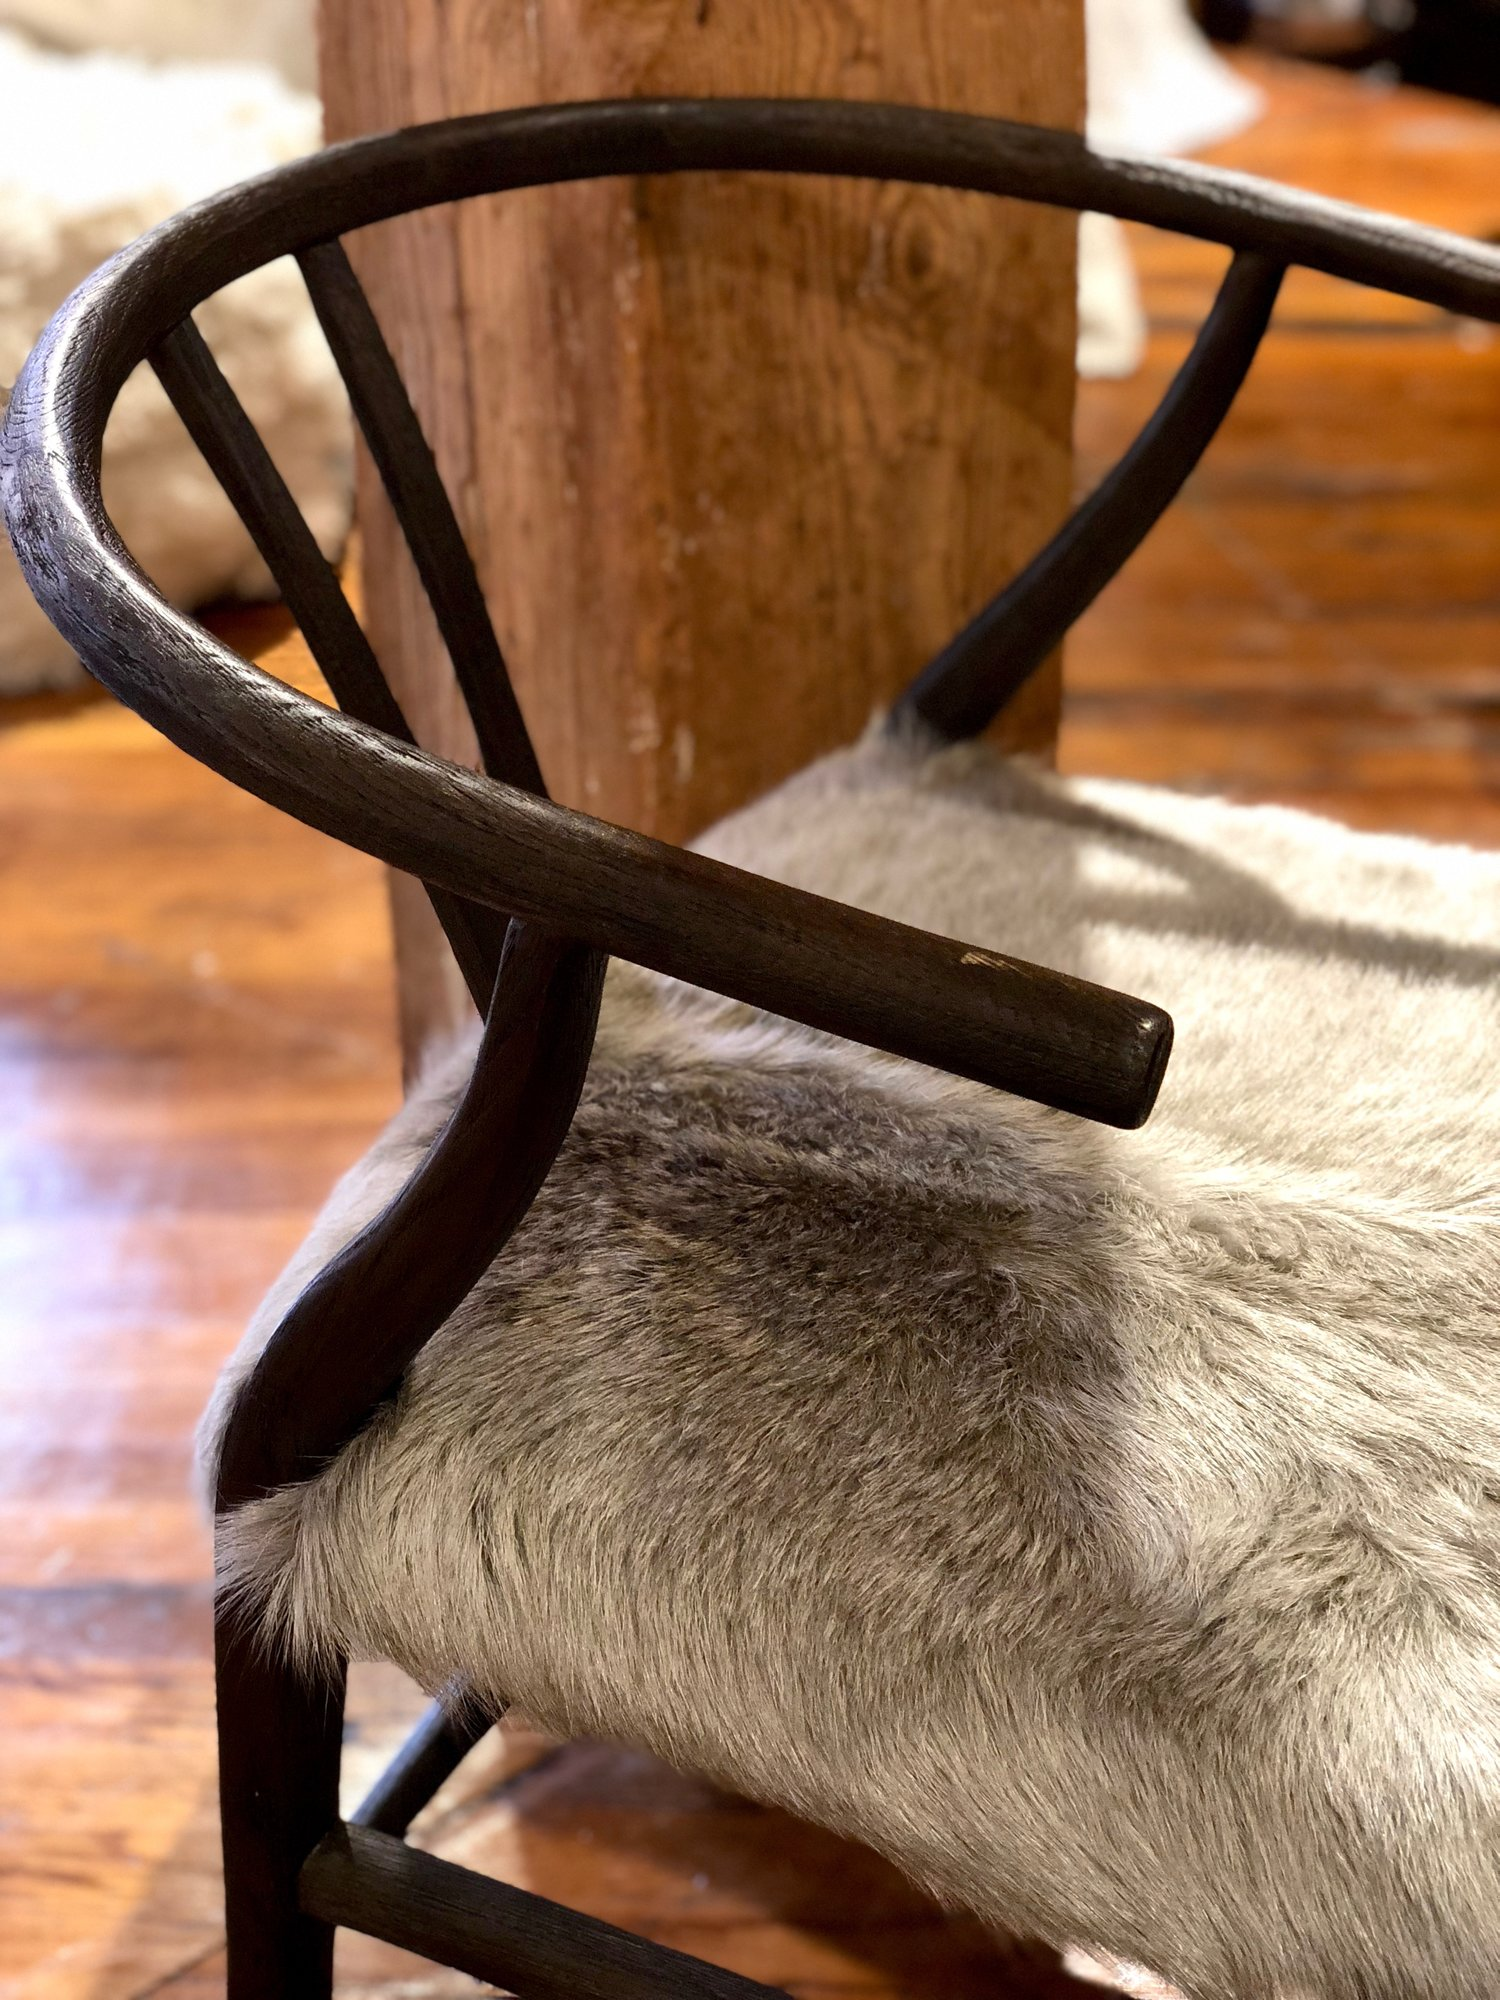 hair-on-hide-wooden-dining-chair-fur-desk-chair